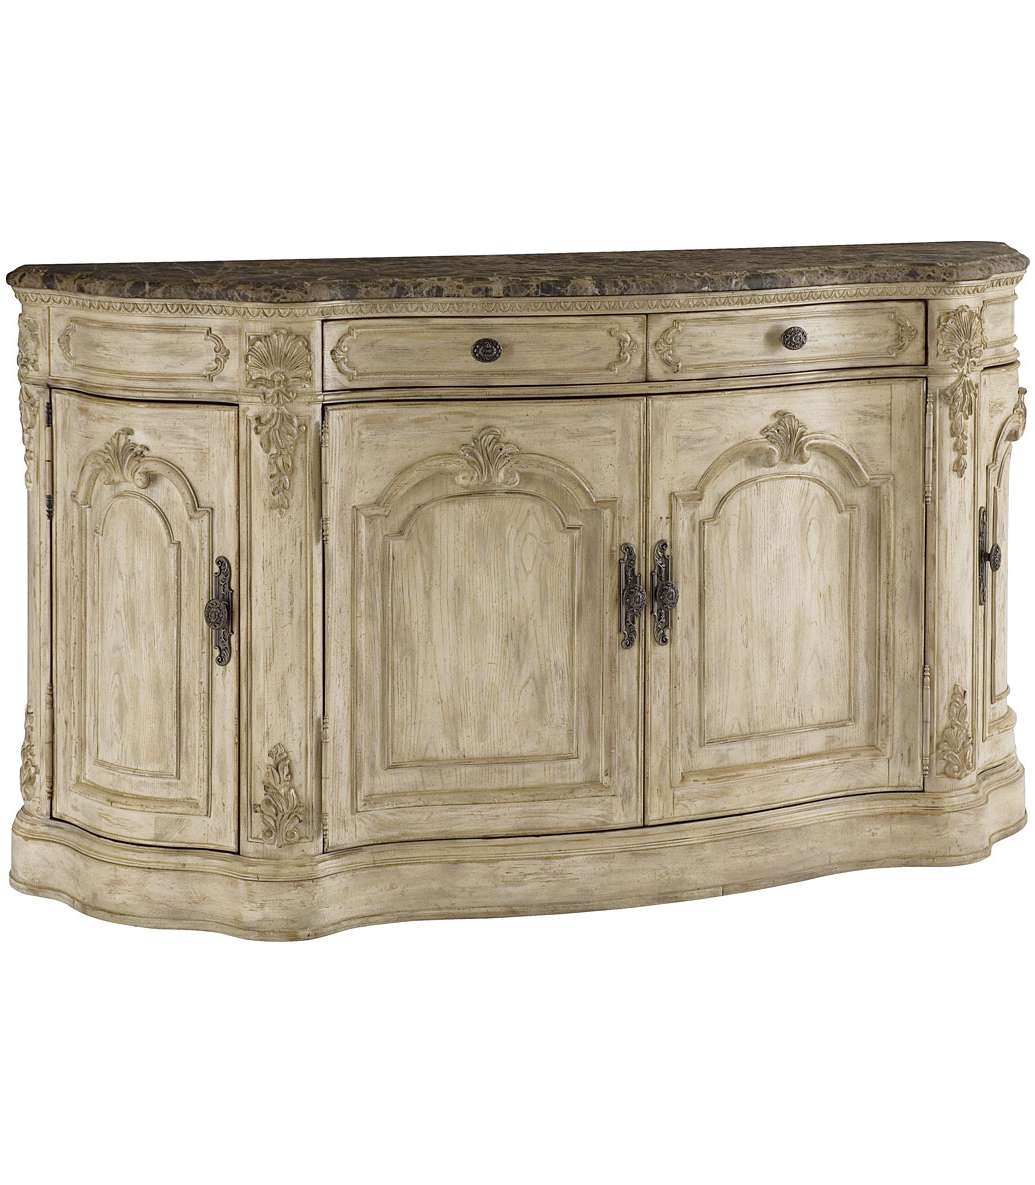 Antique French Country Dinette Decor With Adjustable Shelf Buffet Inside Sideboards With Marble Tops (View 15 of 20)